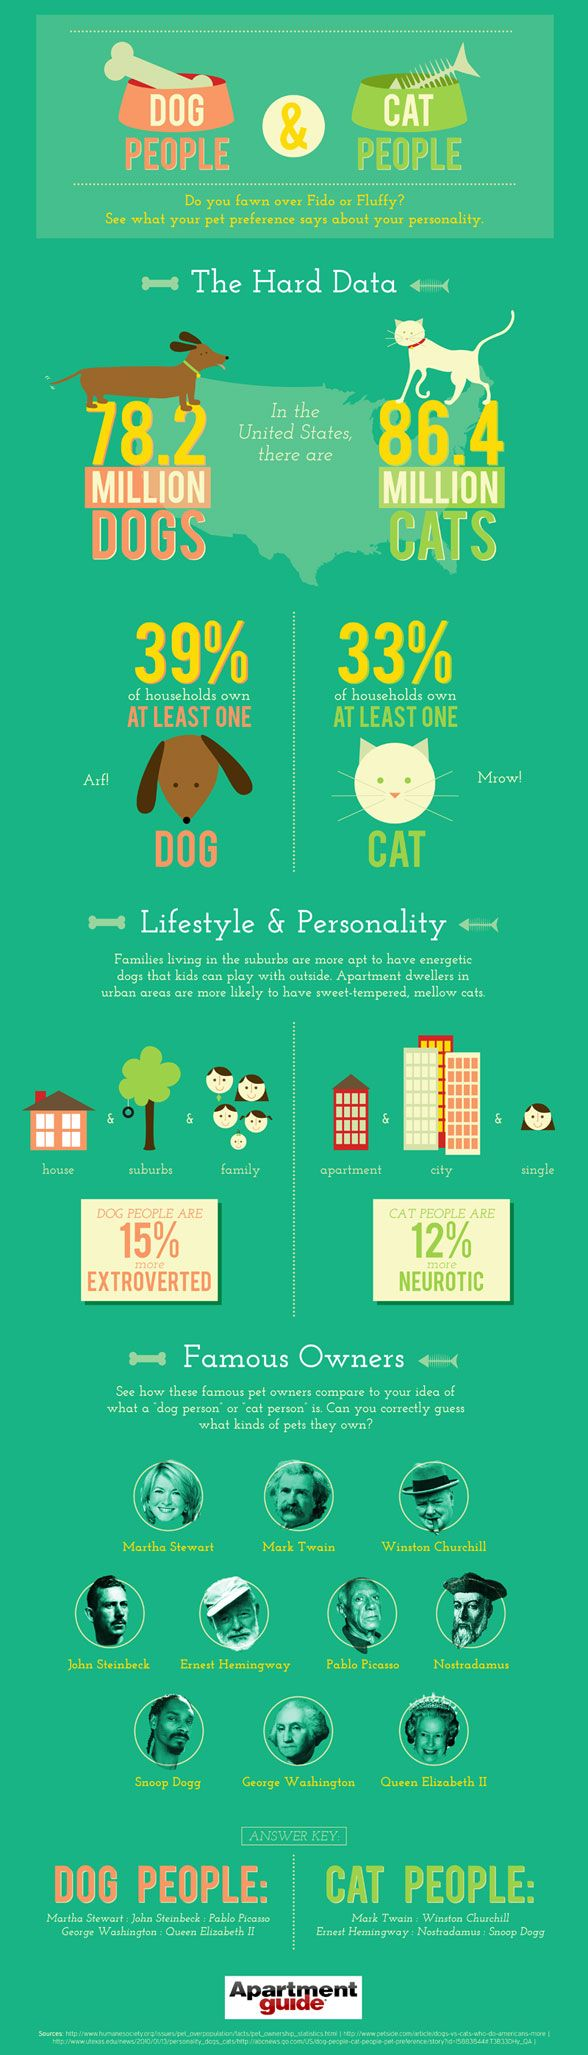 dogs-vs-cats-infographic